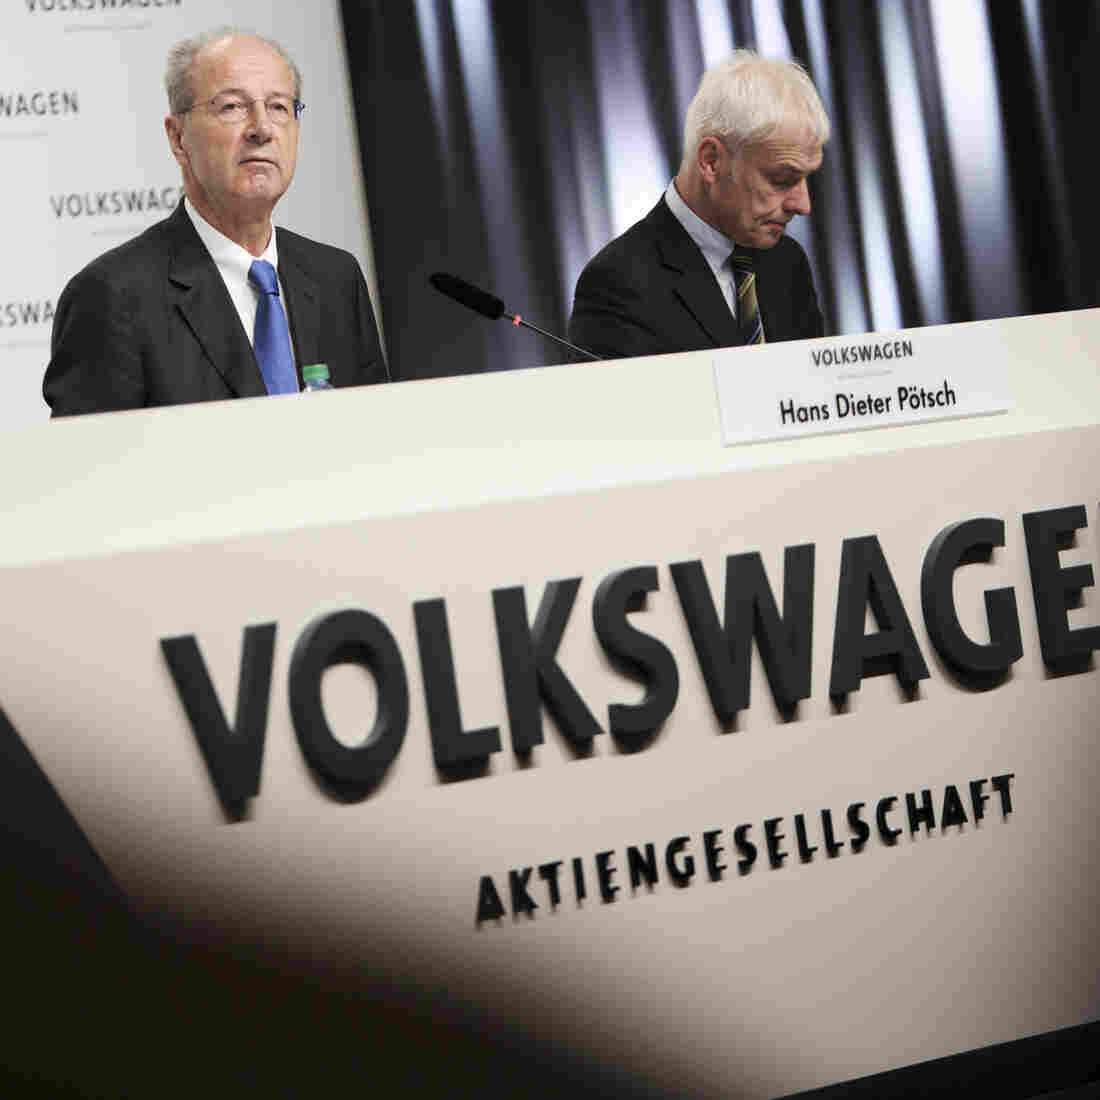 Volkswagen Chairman Hans Dieter Pötsch (left) and CEO Matthias Müller attend a news conference Thursday in Wolfsburg, Germany, to announce the latest update in the company's handling of its emissions scandal.